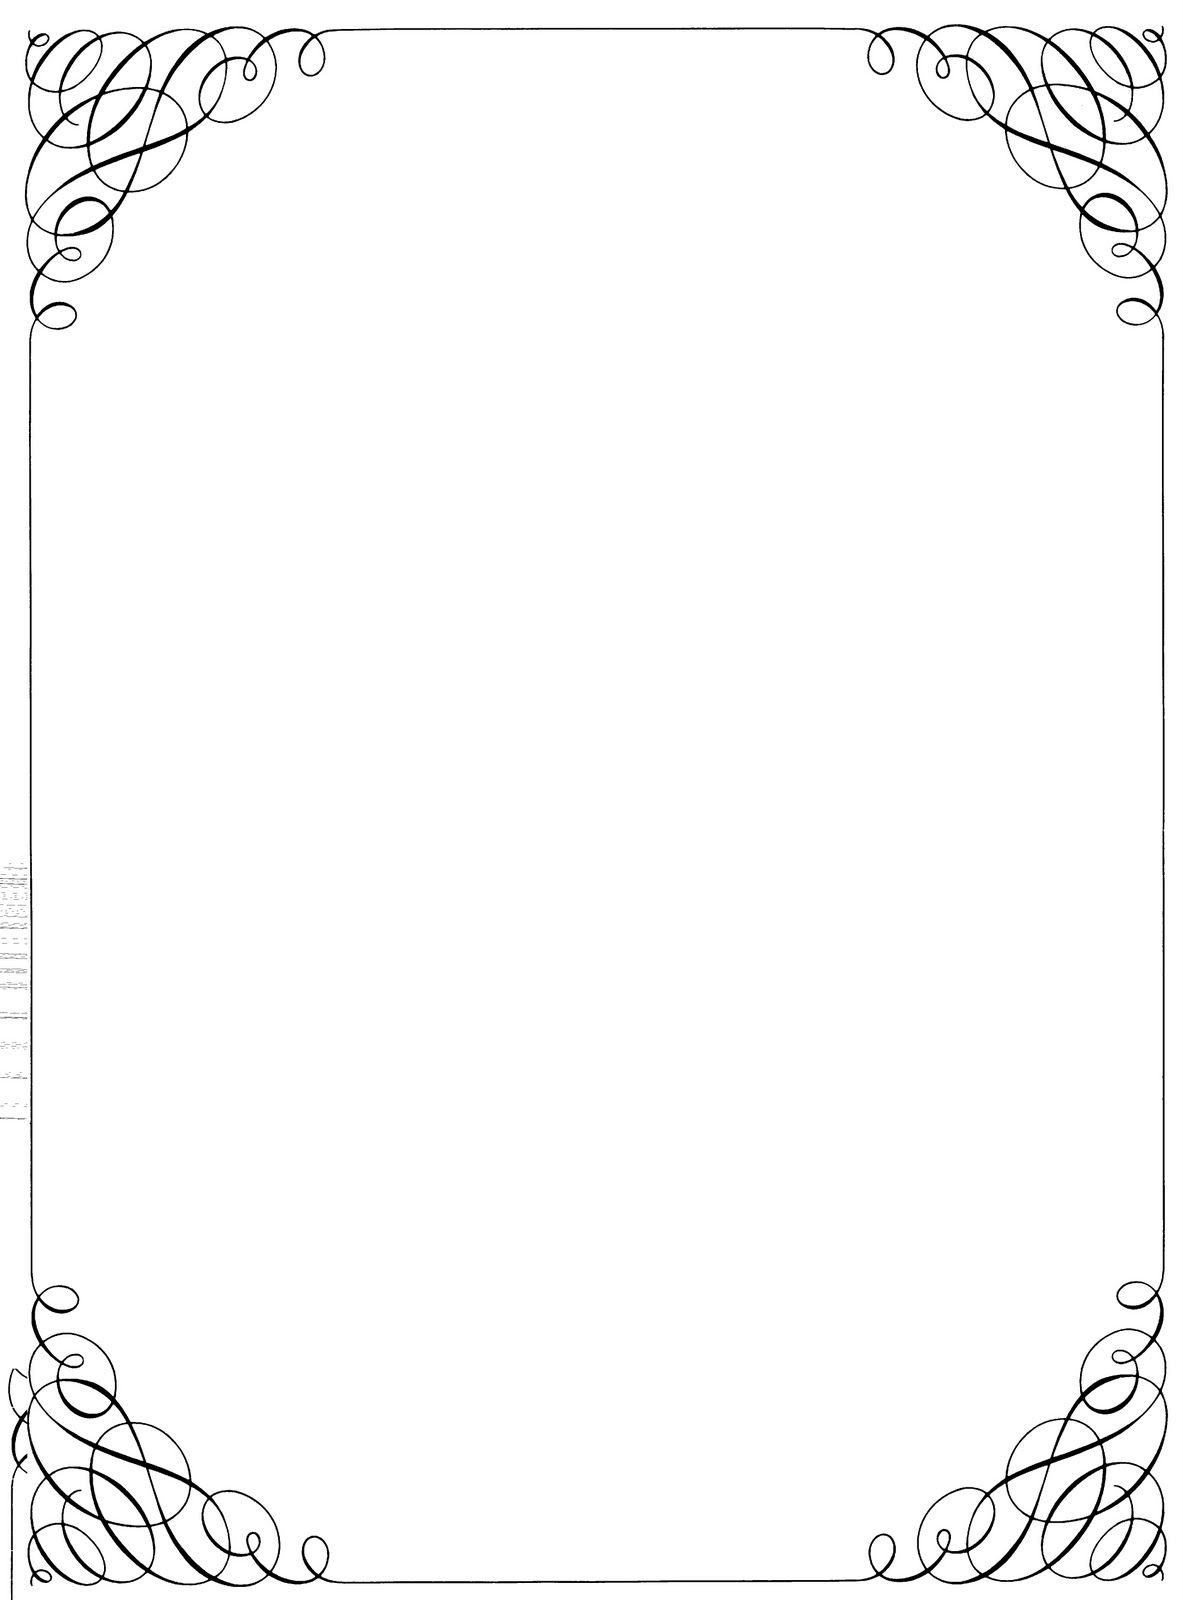 freeuse library Free microsoft and frames. Drawing borders classic